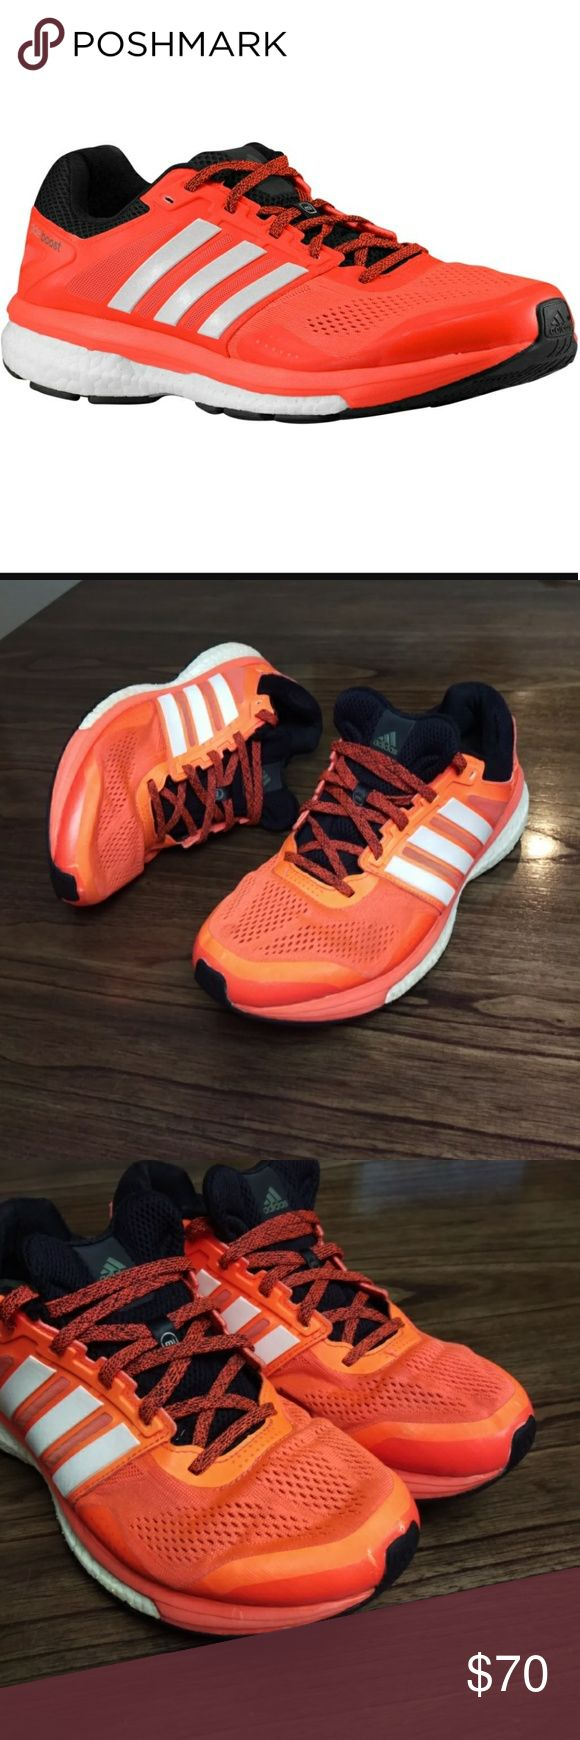 Adidas Men's Supernova Glide Boost 7 Running shoes Adidas Men's Supernova Glide Boost 7 Running shoes Size 10.5 us B40267 Pre-owned in good condition. adidas Shoes Athletic Shoes